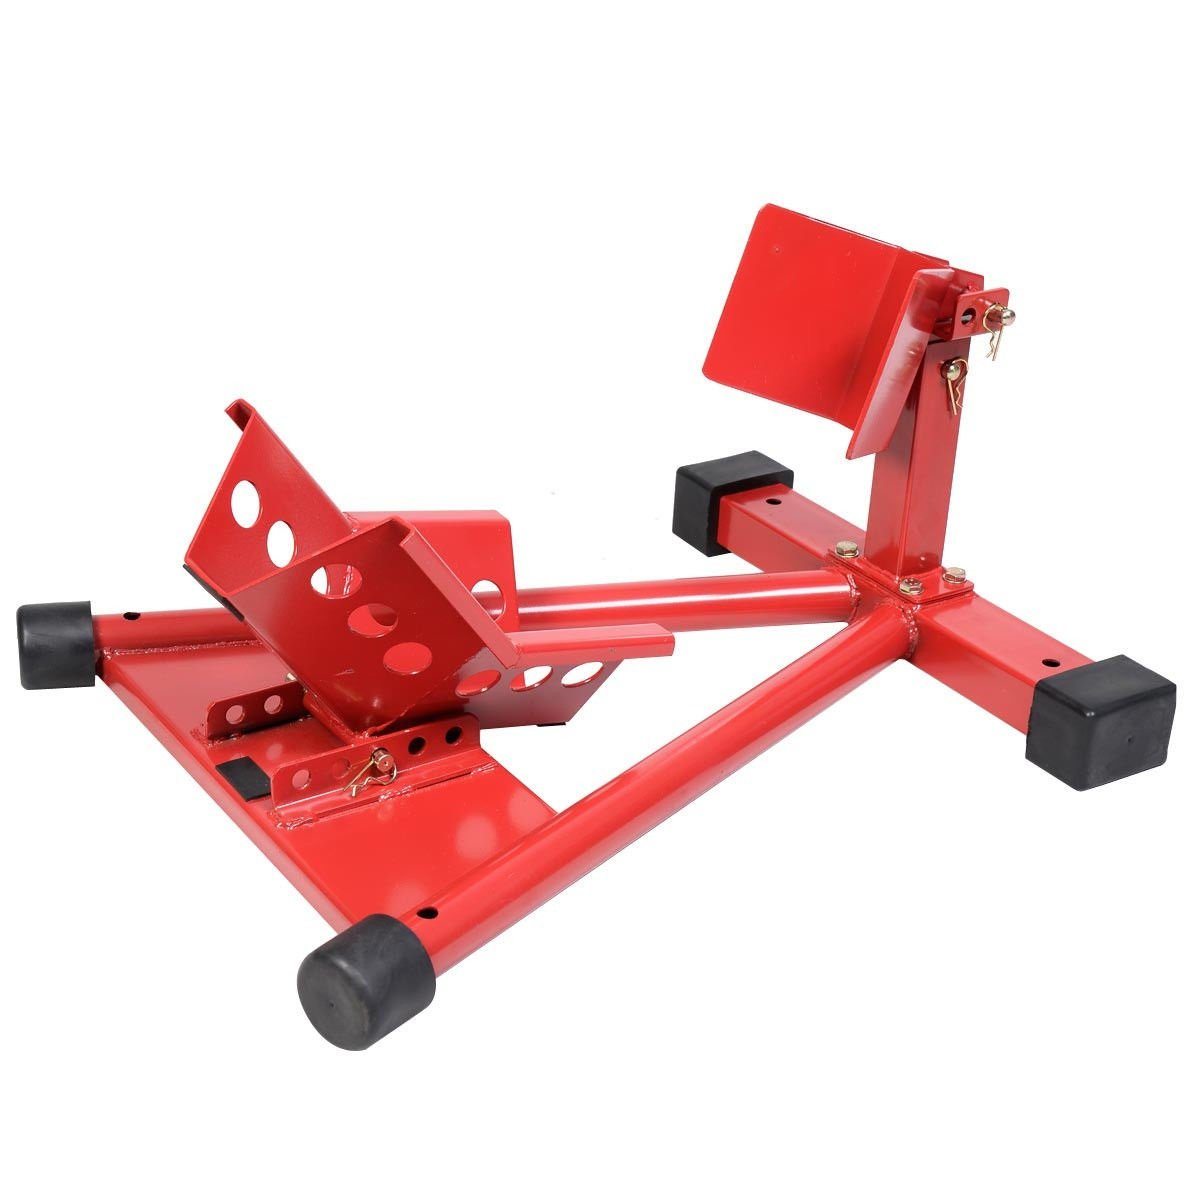 1500LB Motorcycle Transporting Wheel Chock Stand Security